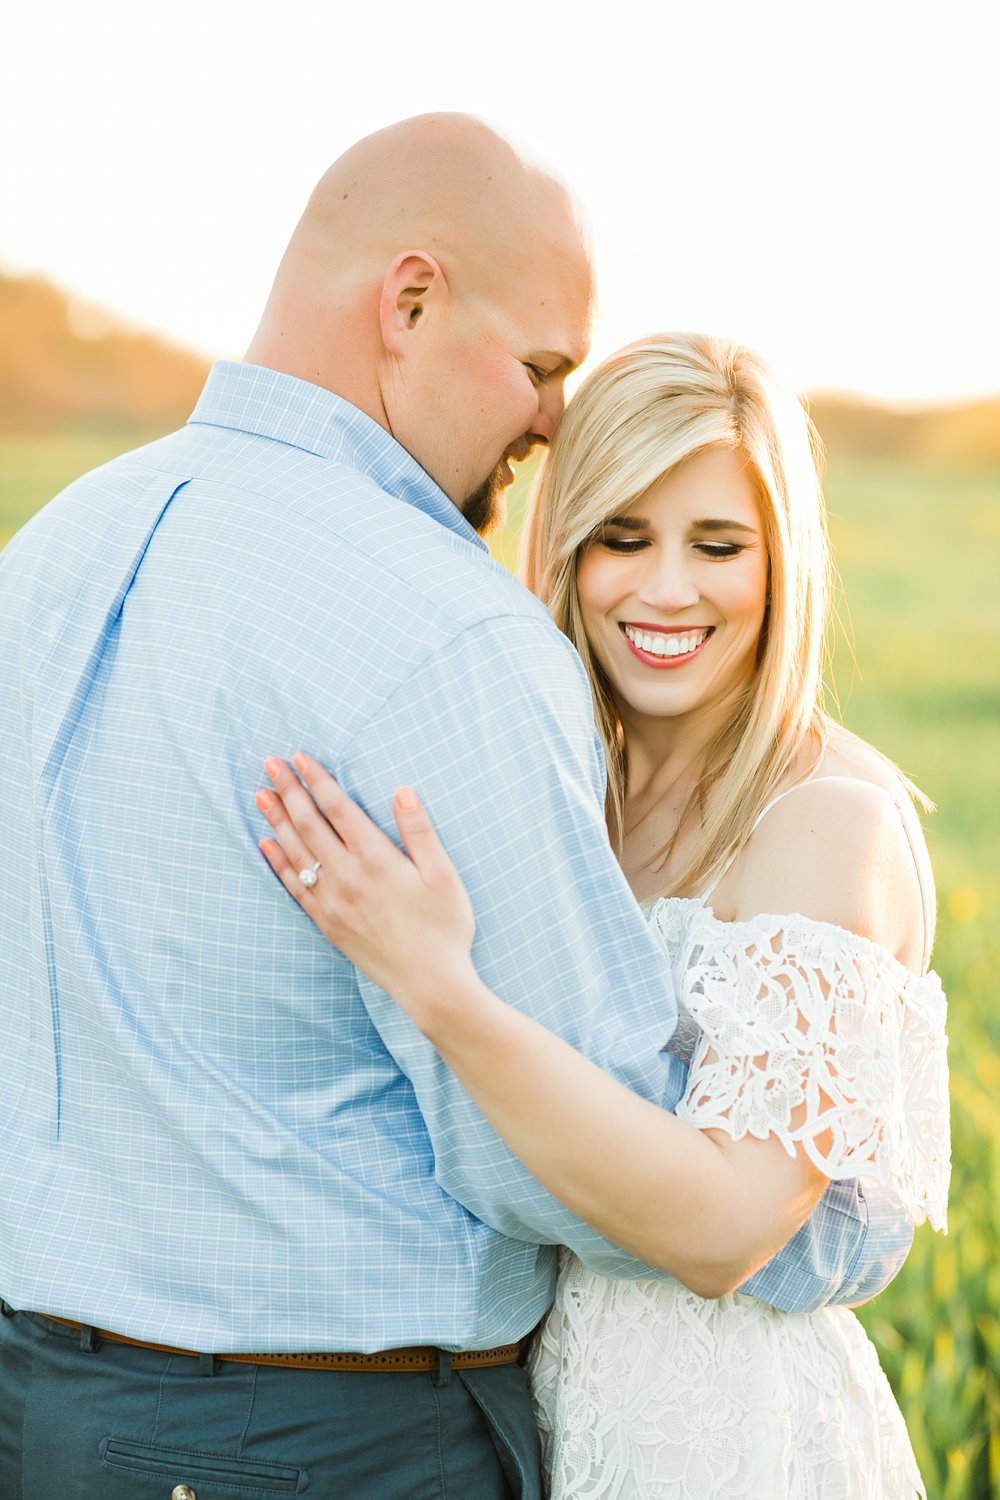 kayla-trent-country-engagement-session-texas-windthorst-graham-wichita-falls-jeep-engaged-00013.jpg